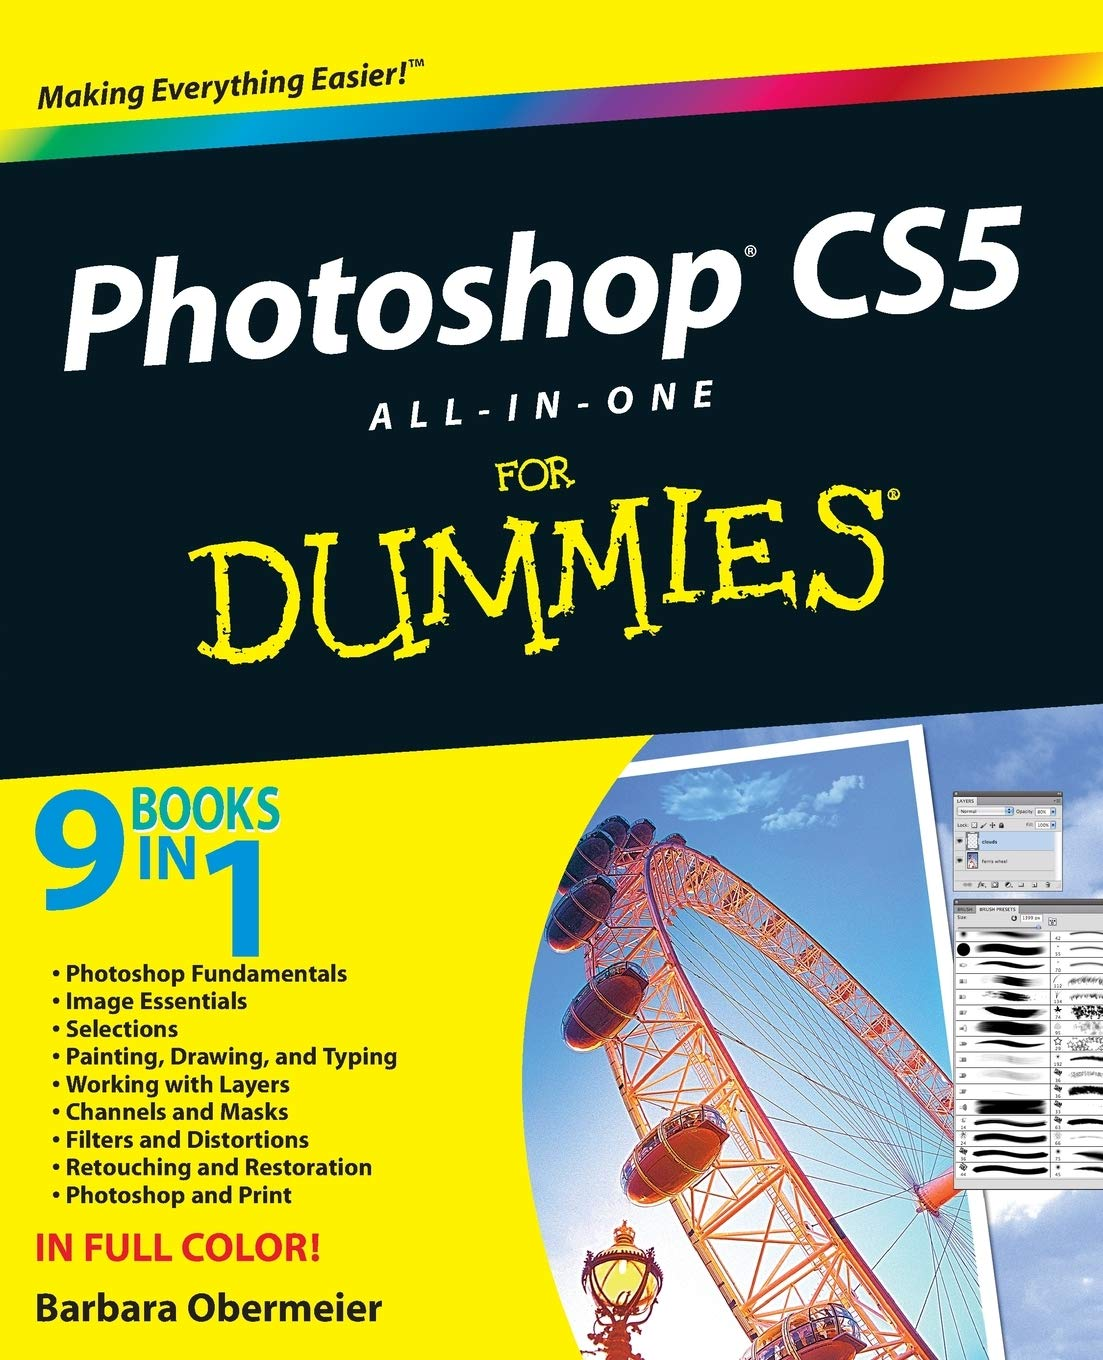 Download Adobe Photoshop CS5 full version for free. - Download Free ISO